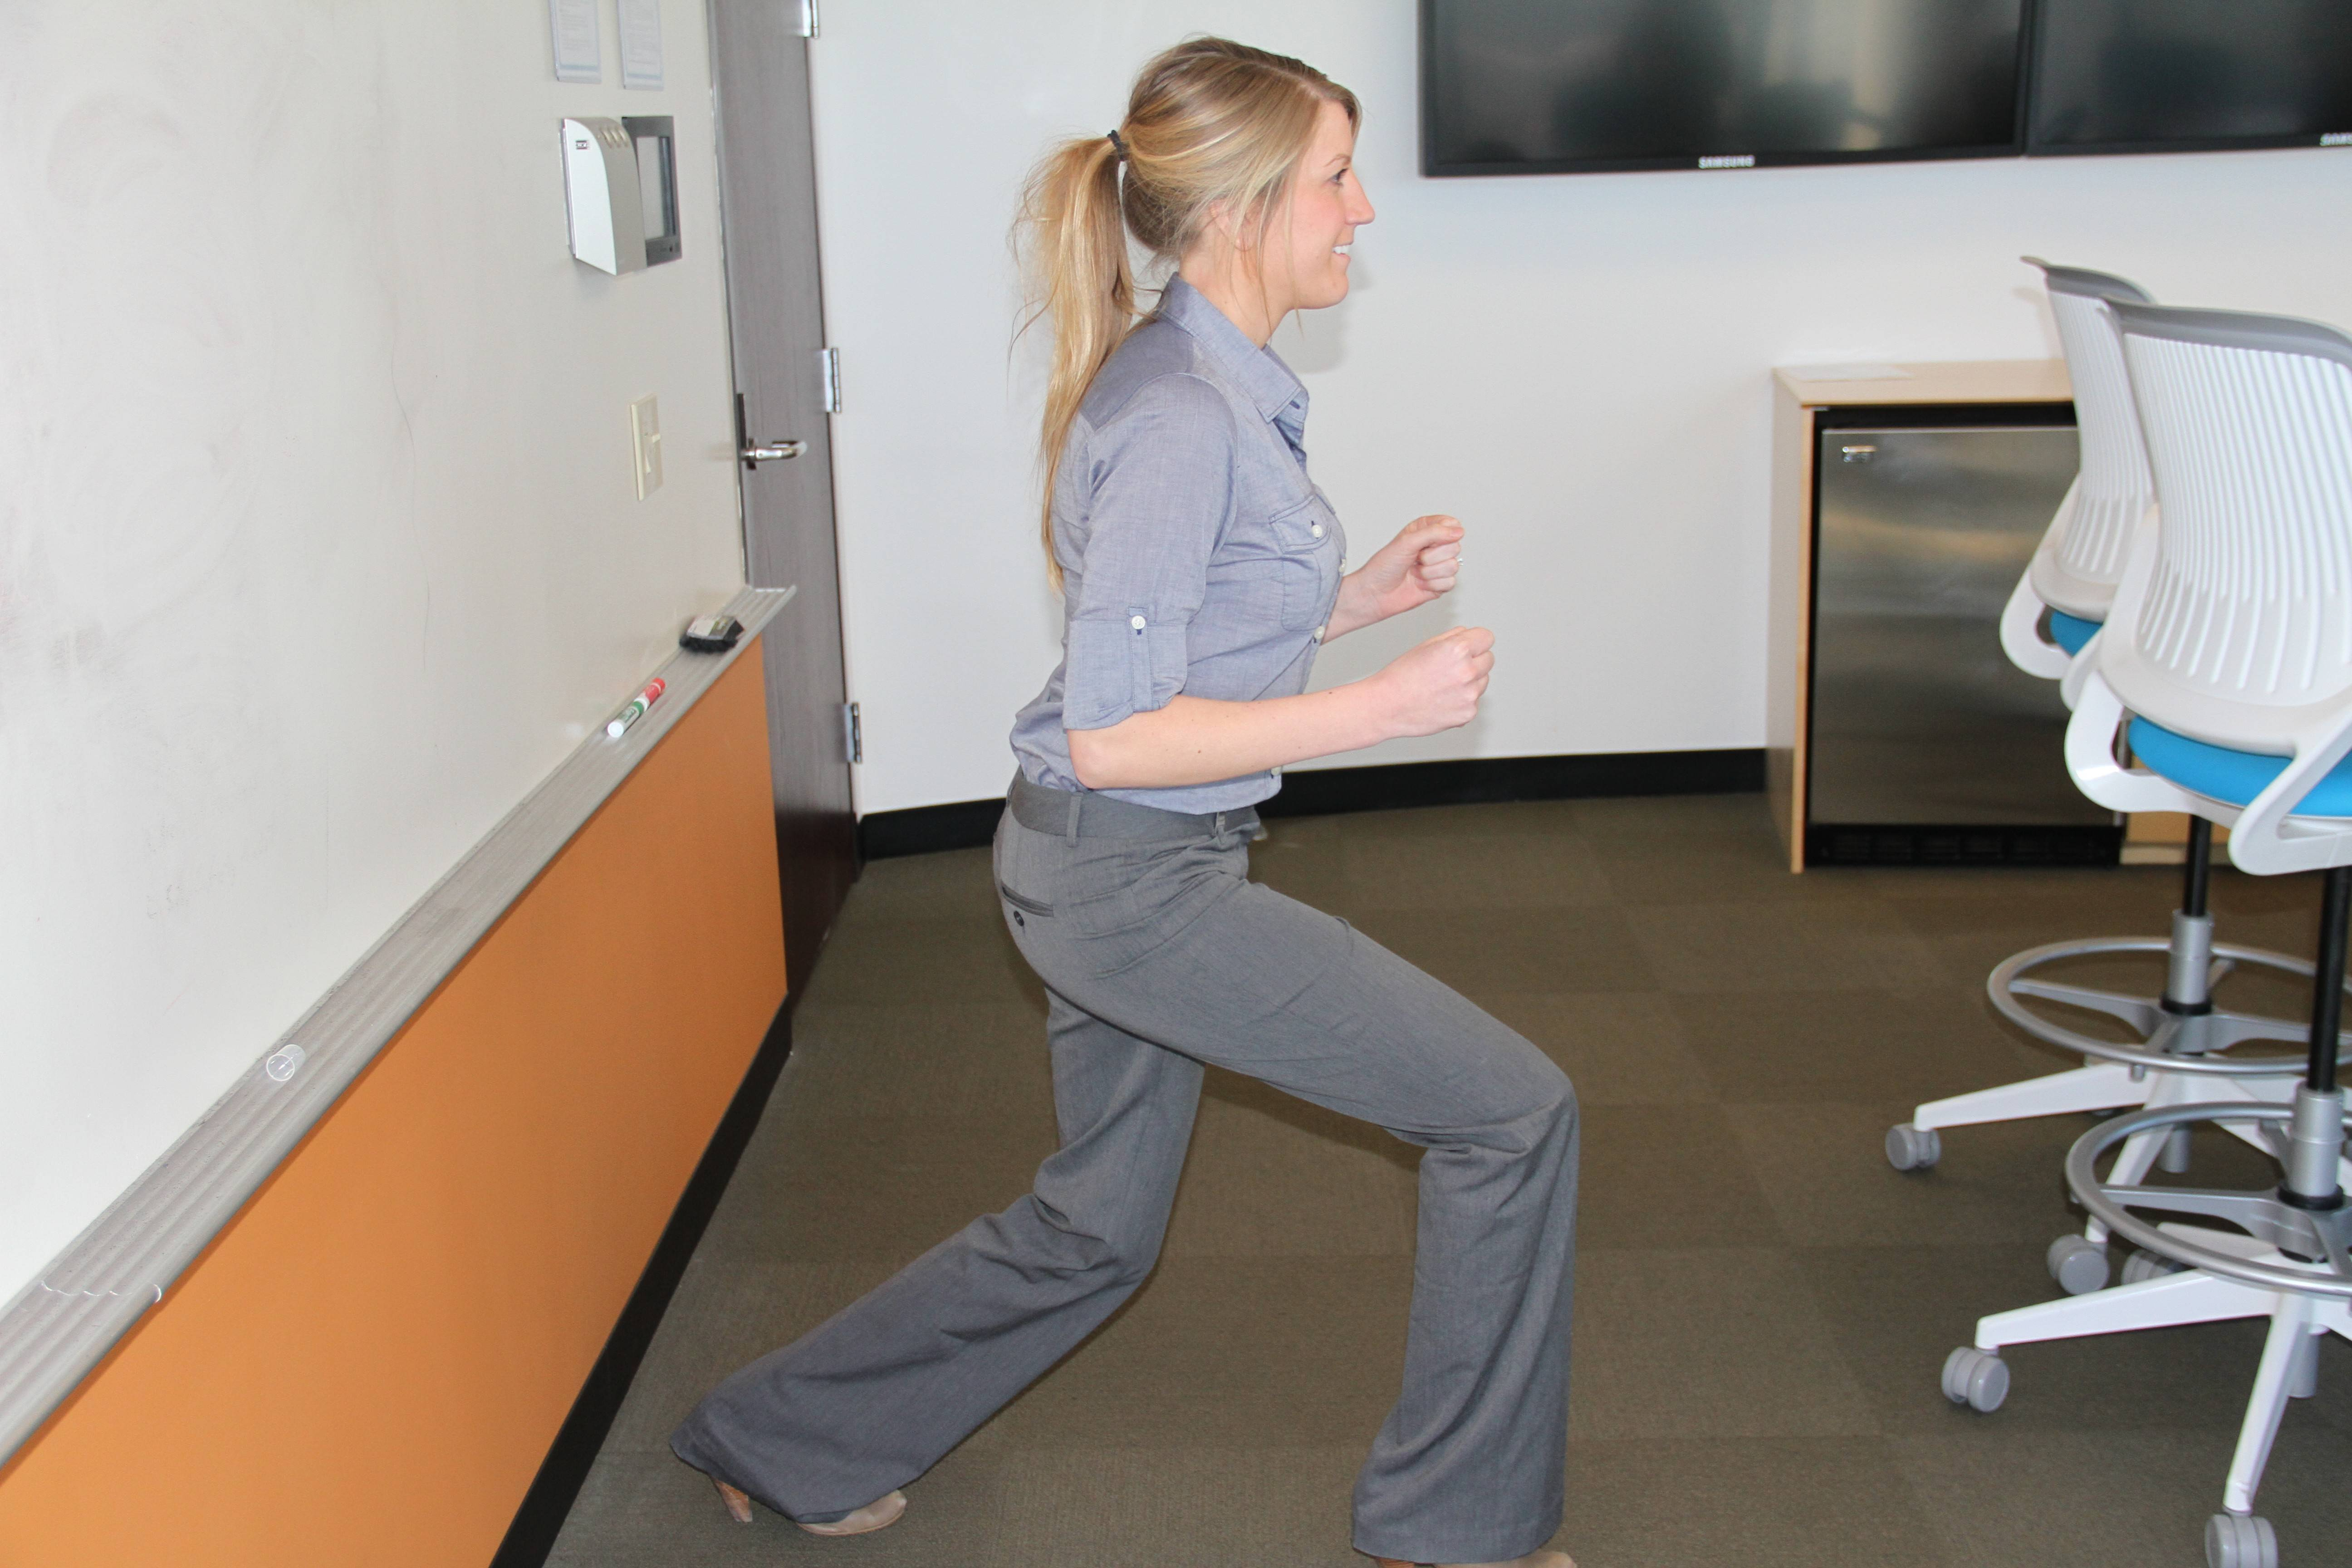 Jill Micklow, wellness specialist at Assurance, captures the fitness spirit with split squat jumps -- in high heels no less.